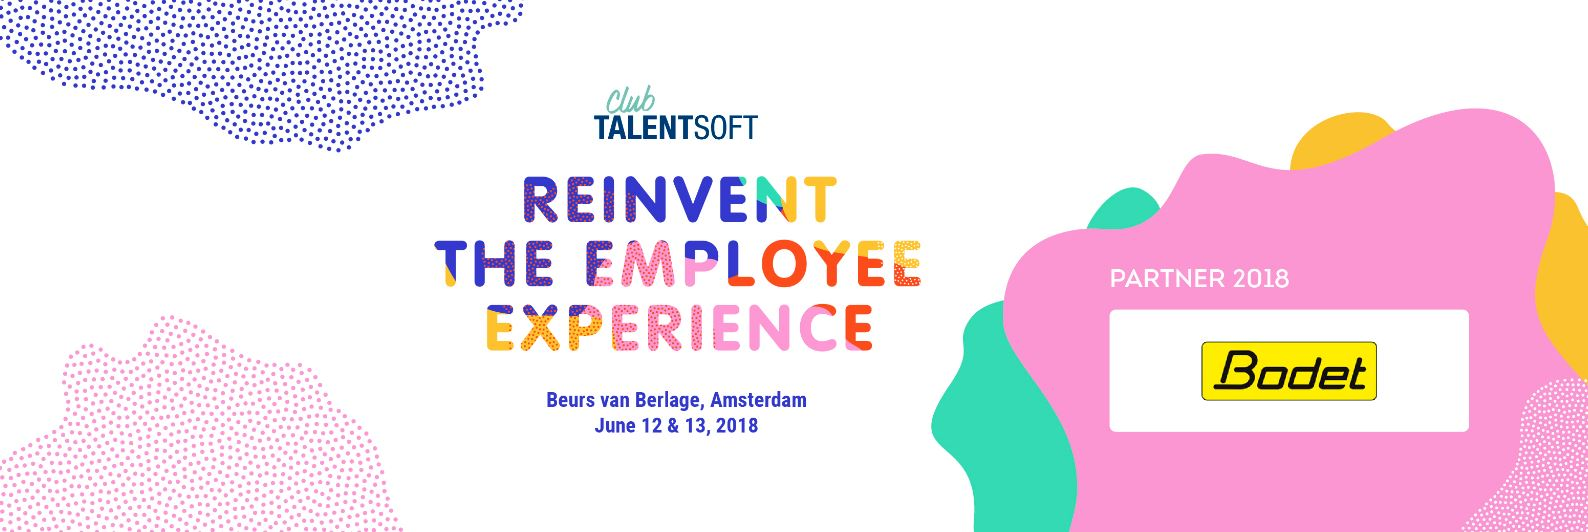 Club Talentsoft 1